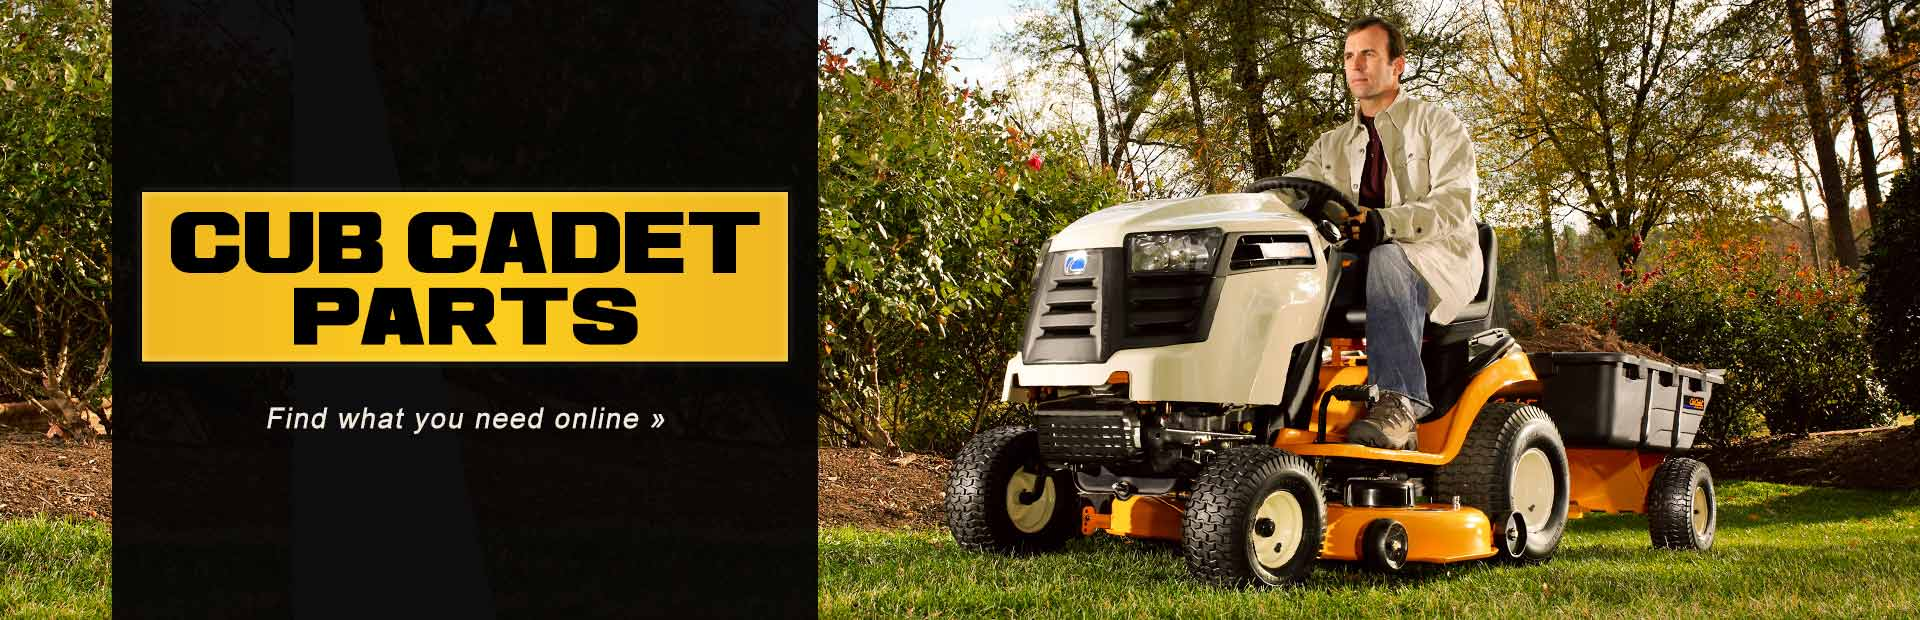 Cub Cadet Parts: Click here to find what you need online.